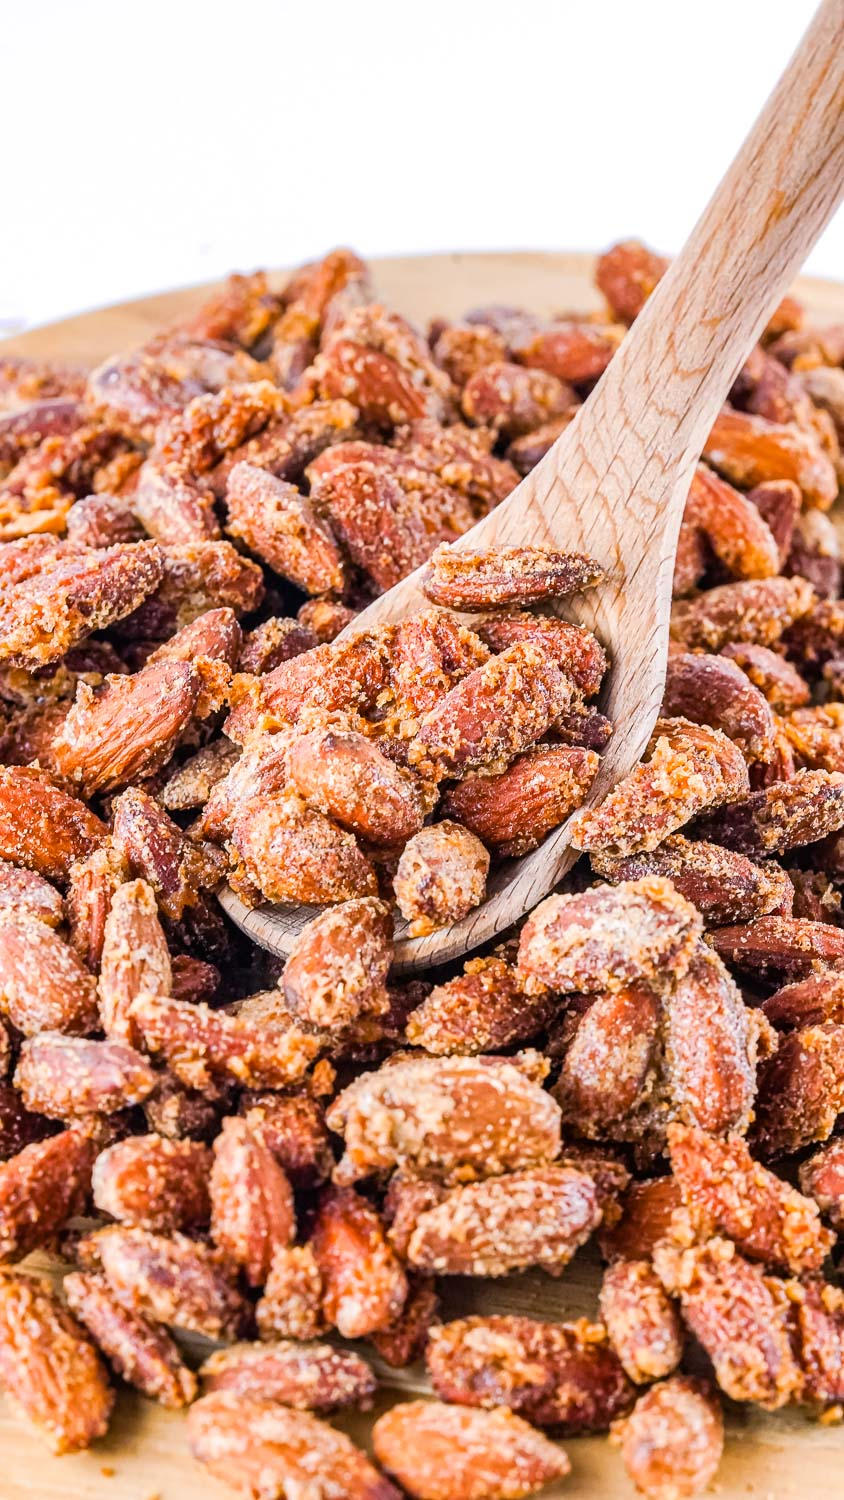 A wooden spoon picking up some of the finished Cinnamon Sugar Smoked Almonds.